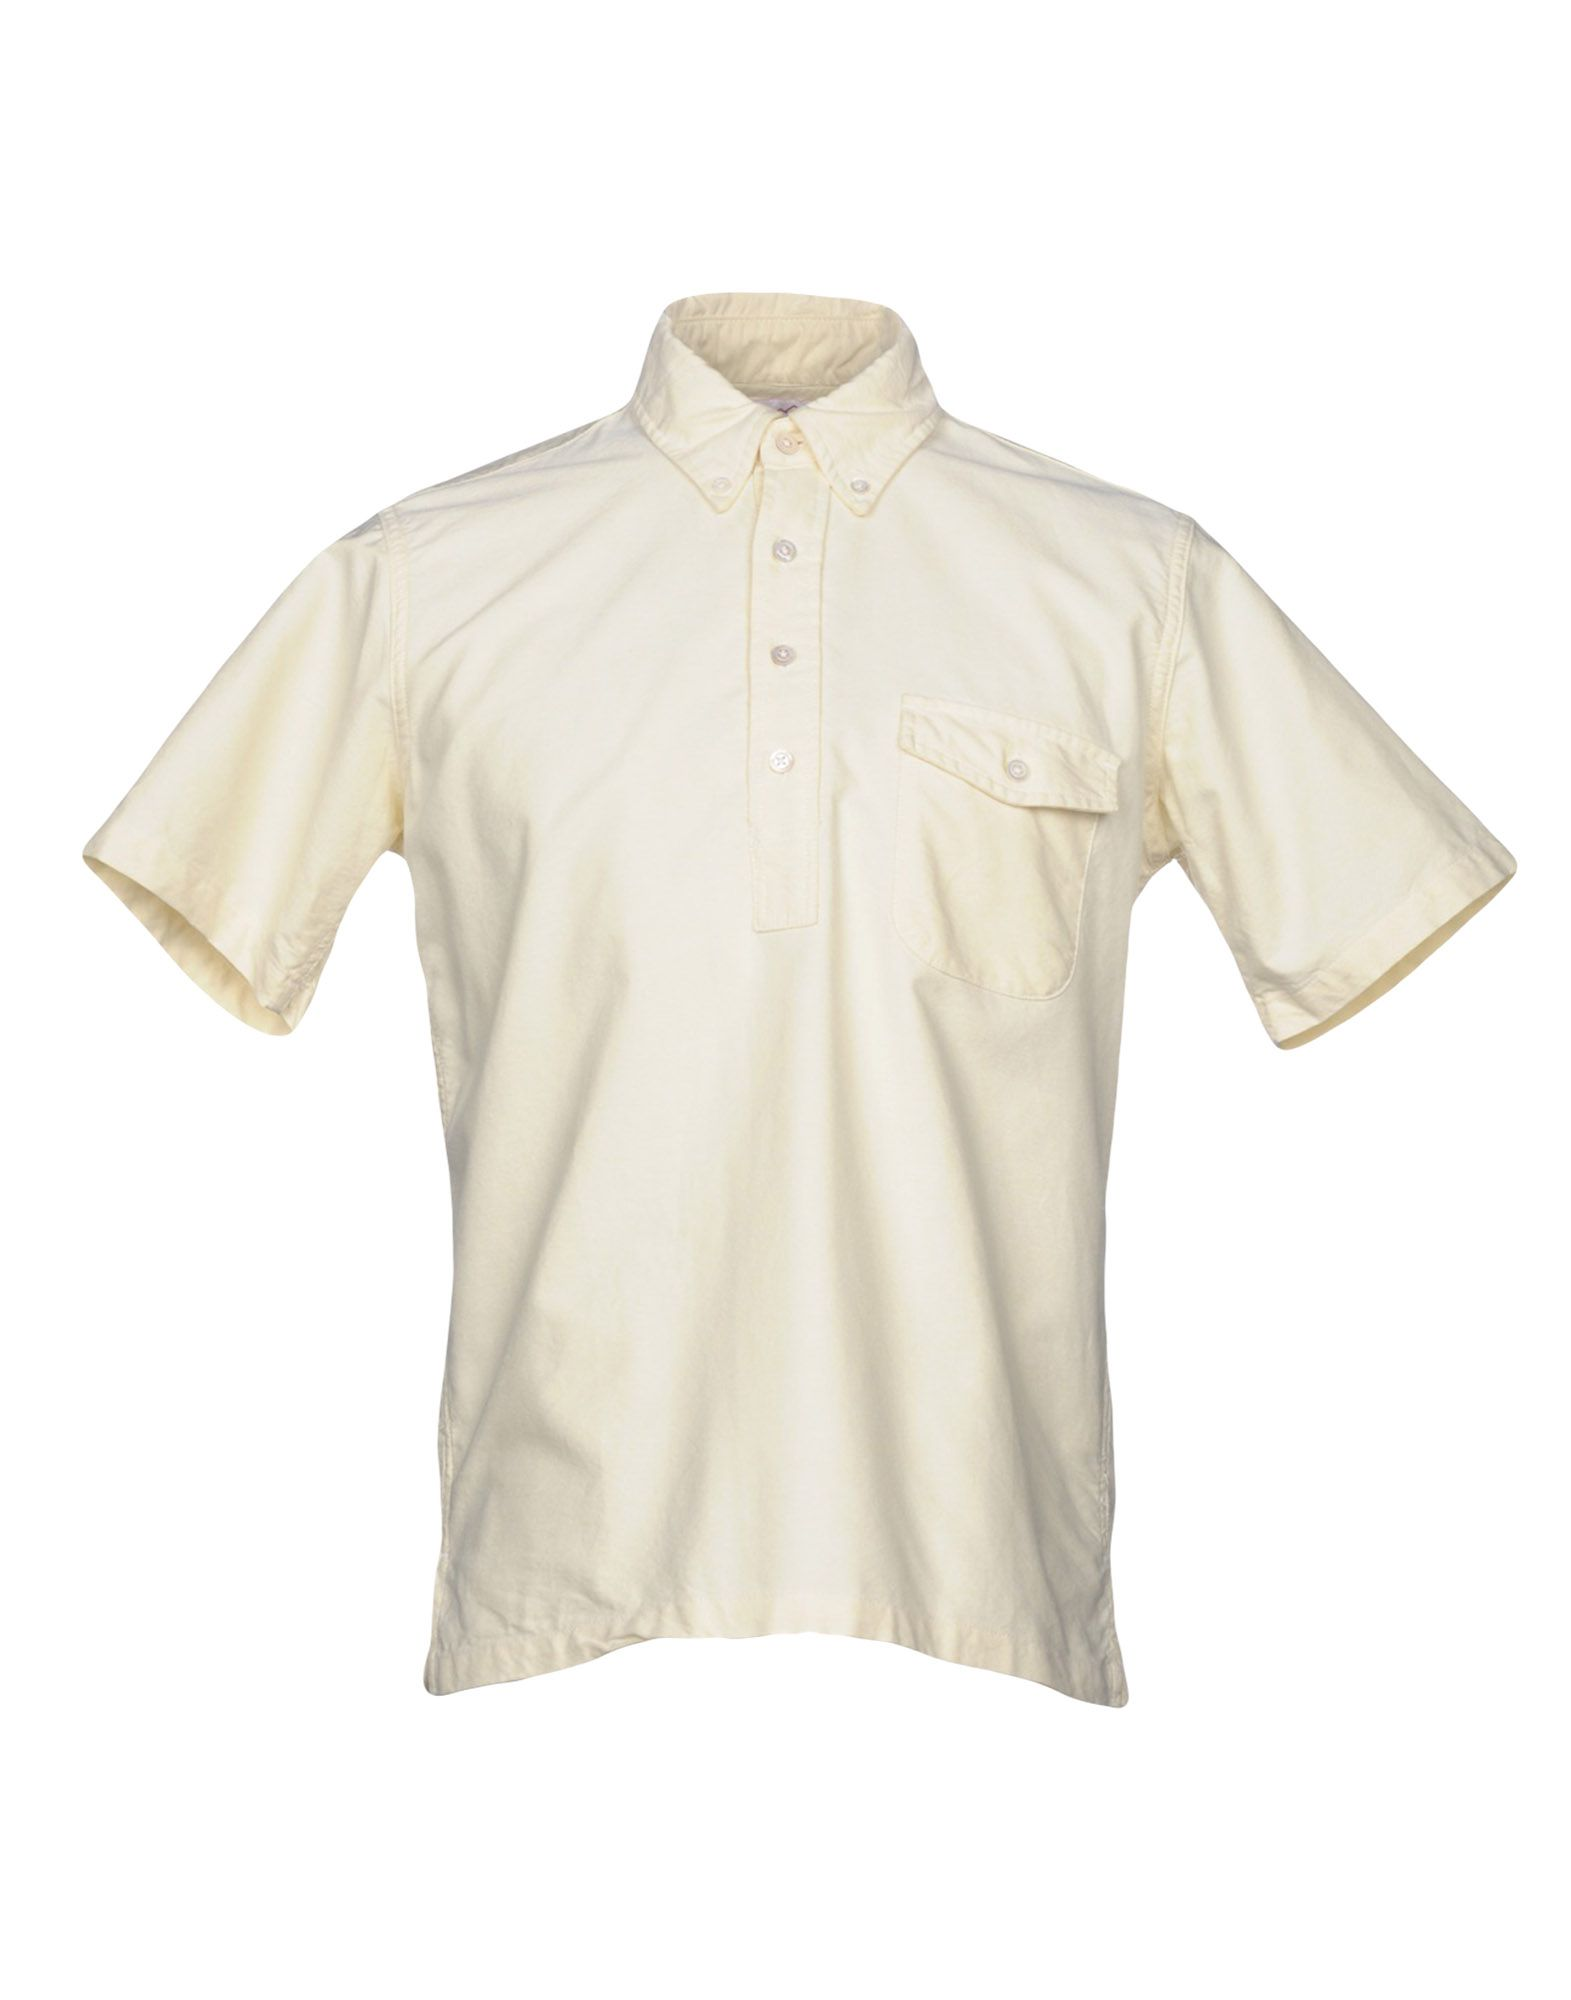 BATTENWEAR Solid Color Shirt in Light Yellow